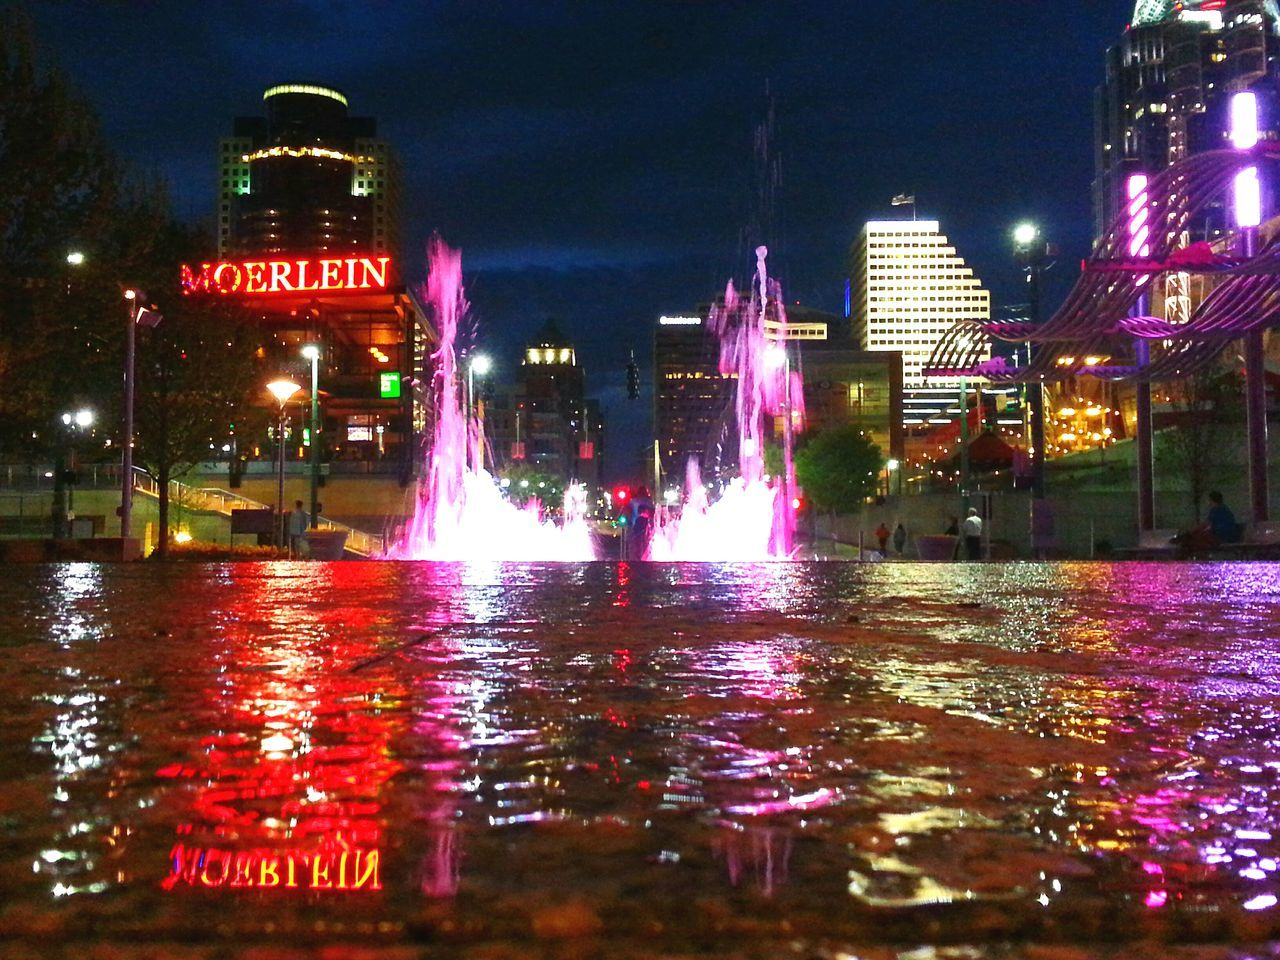 Illuminated Fountains Against Buildings In City At Night